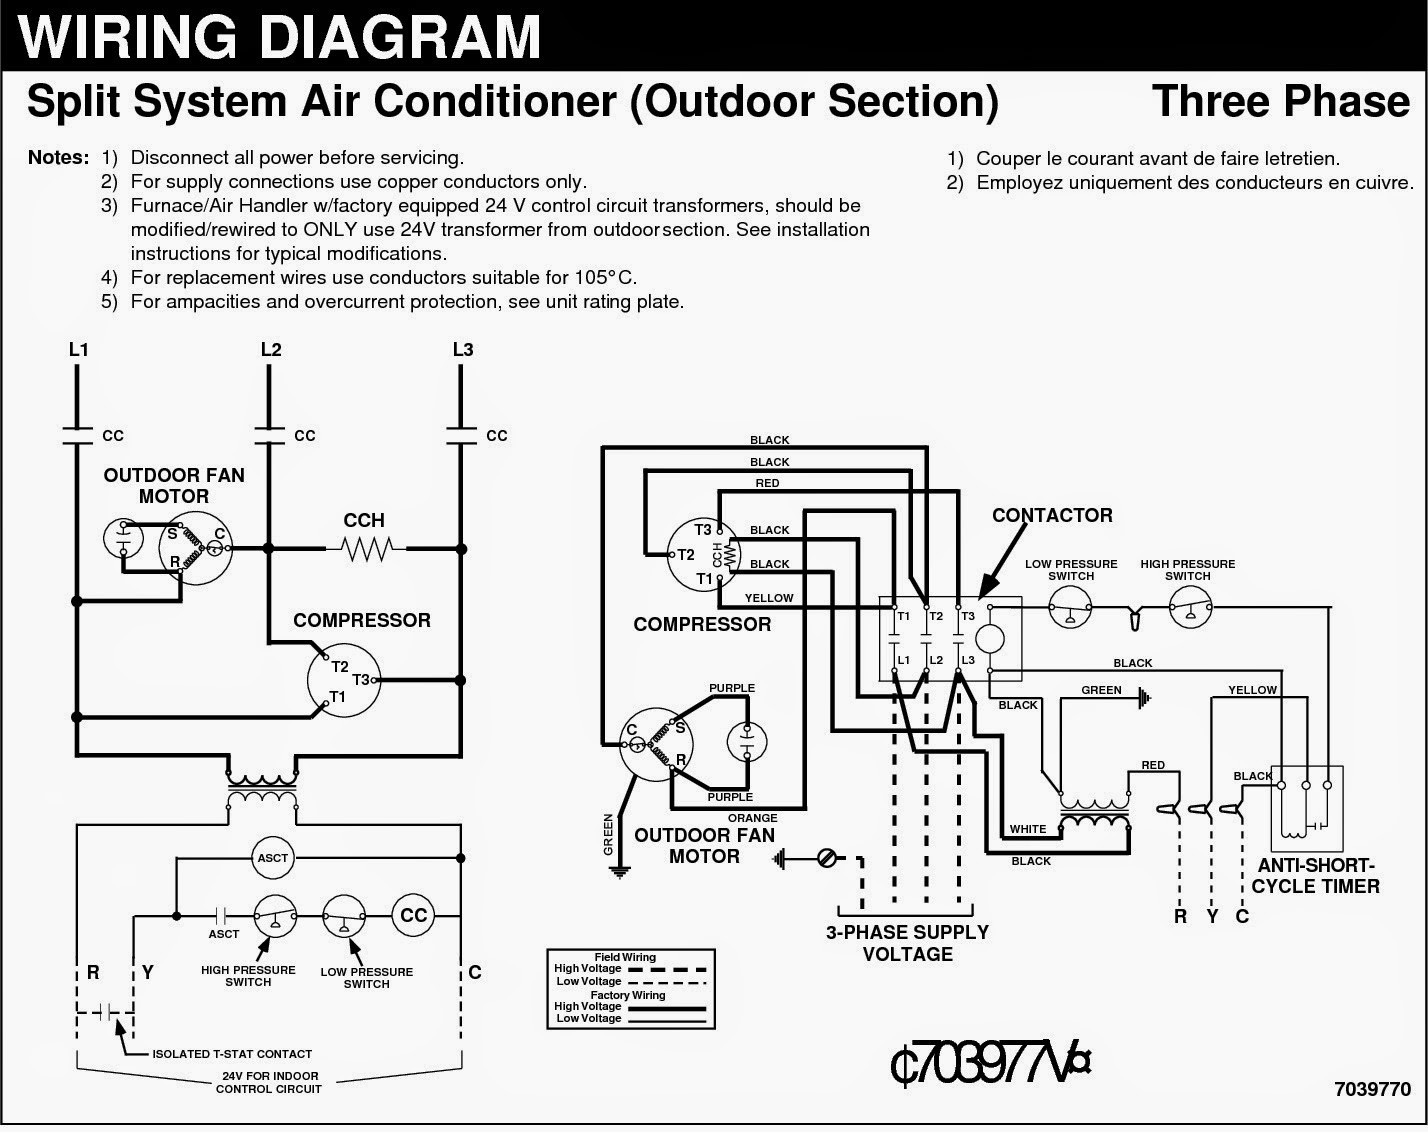 medium resolution of single pole diagram free wiring diagram images power and signal connections